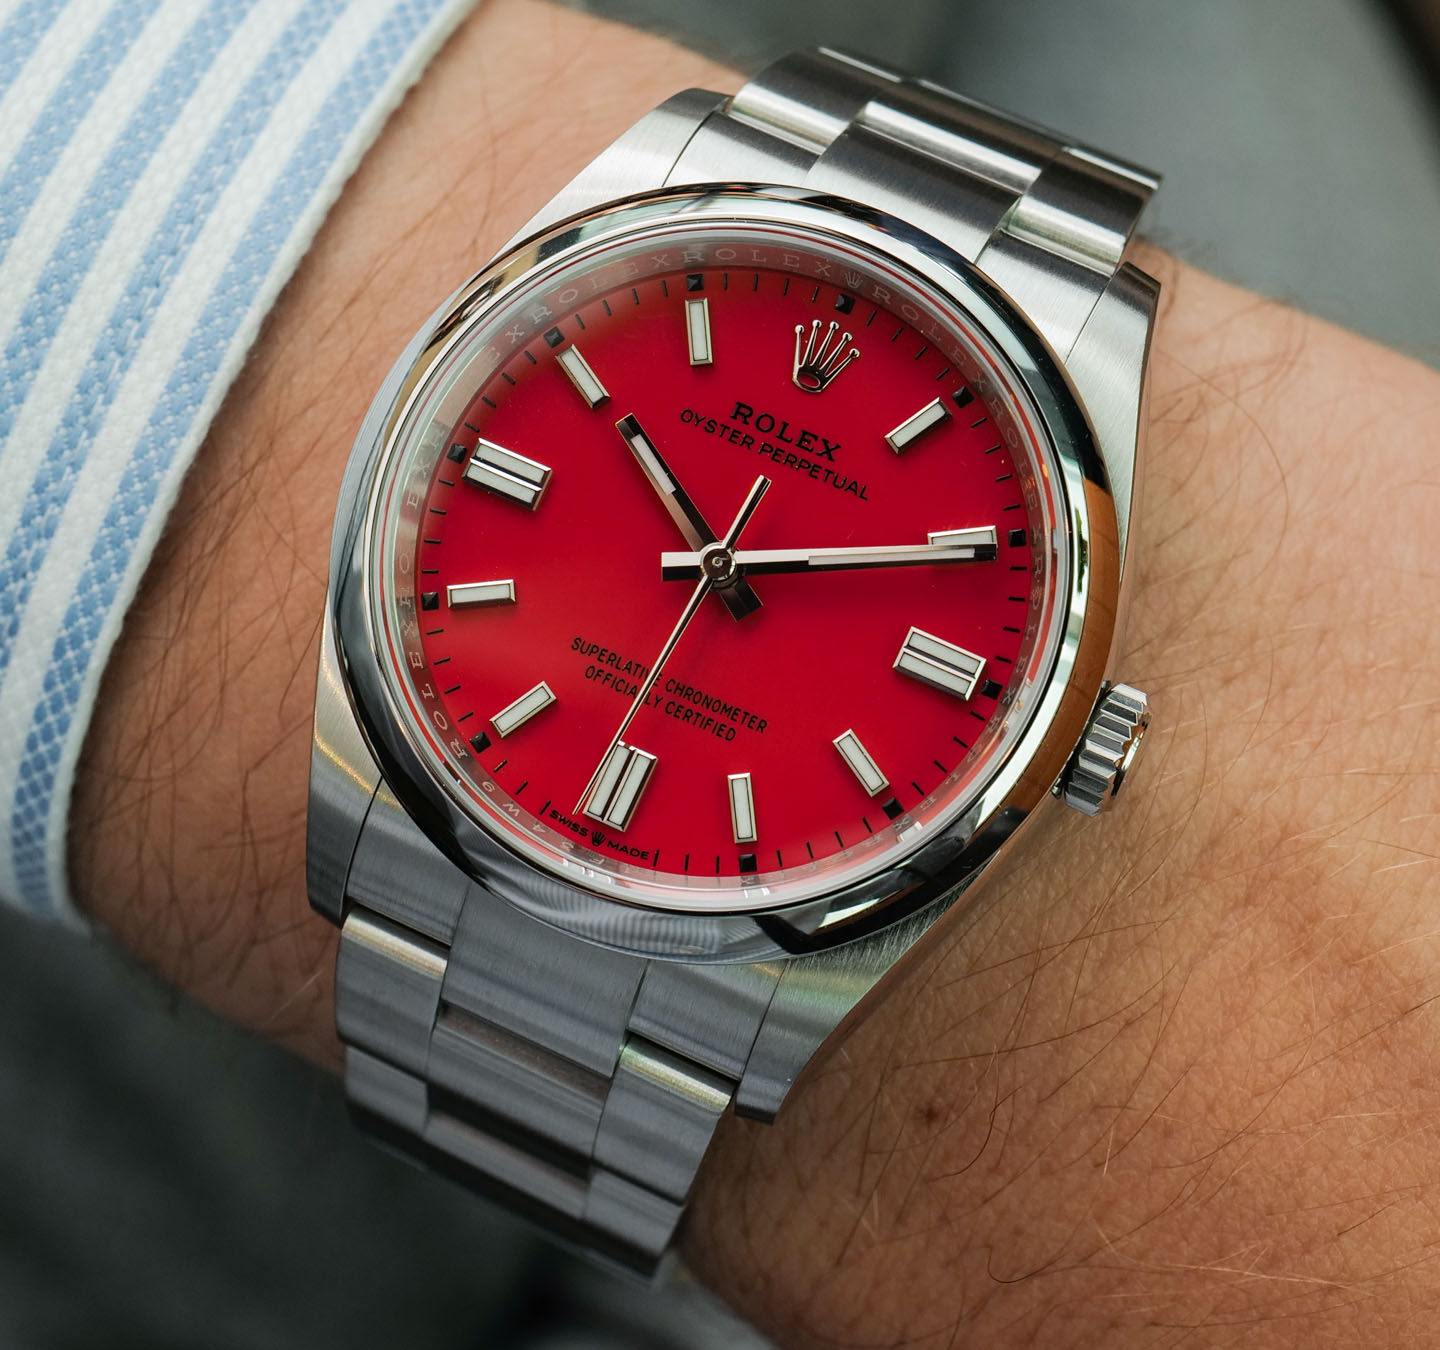 The 36 mm Rolex Oyster Perpetual fake watch is good choice for both men and women.